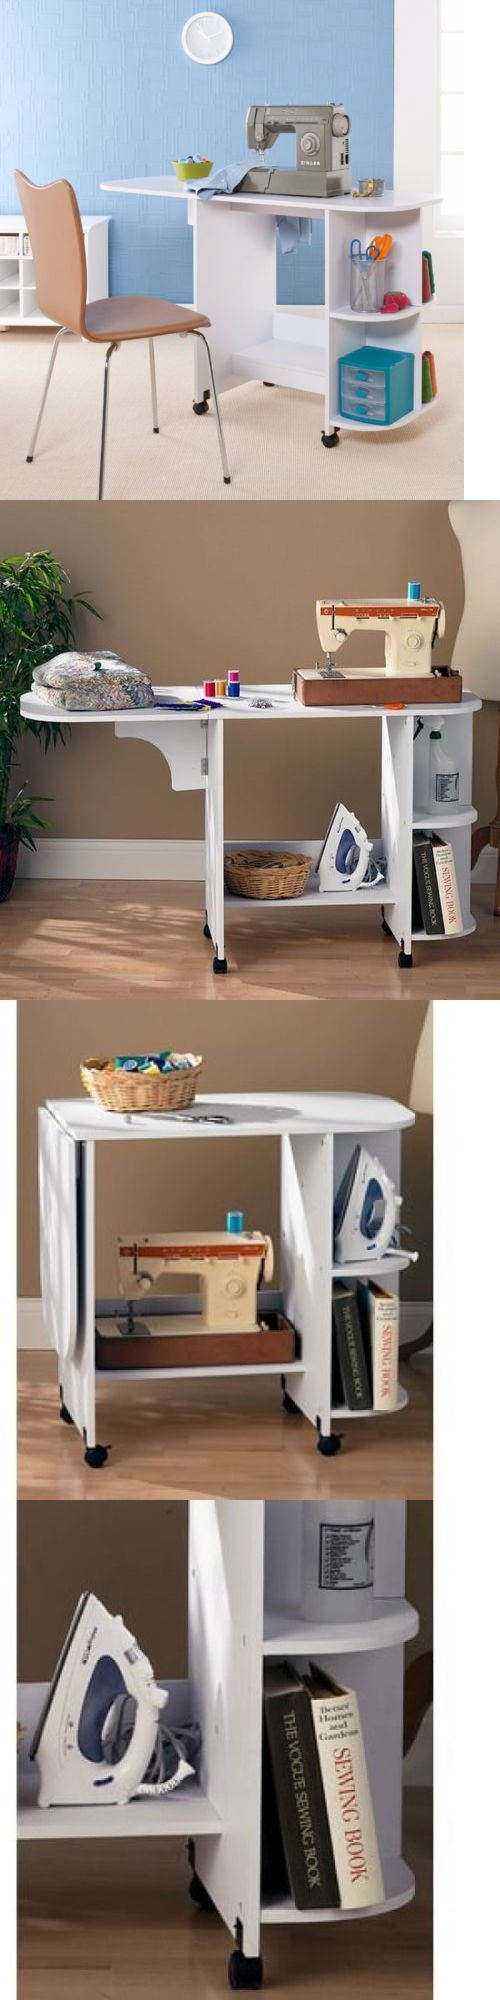 Other Sewing Machine Accs 28168: Transitional Wood Folding Rolling Sewing Machine Table With Shelves Storage -> BUY IT NOW ONLY: $104.39 on eBay!